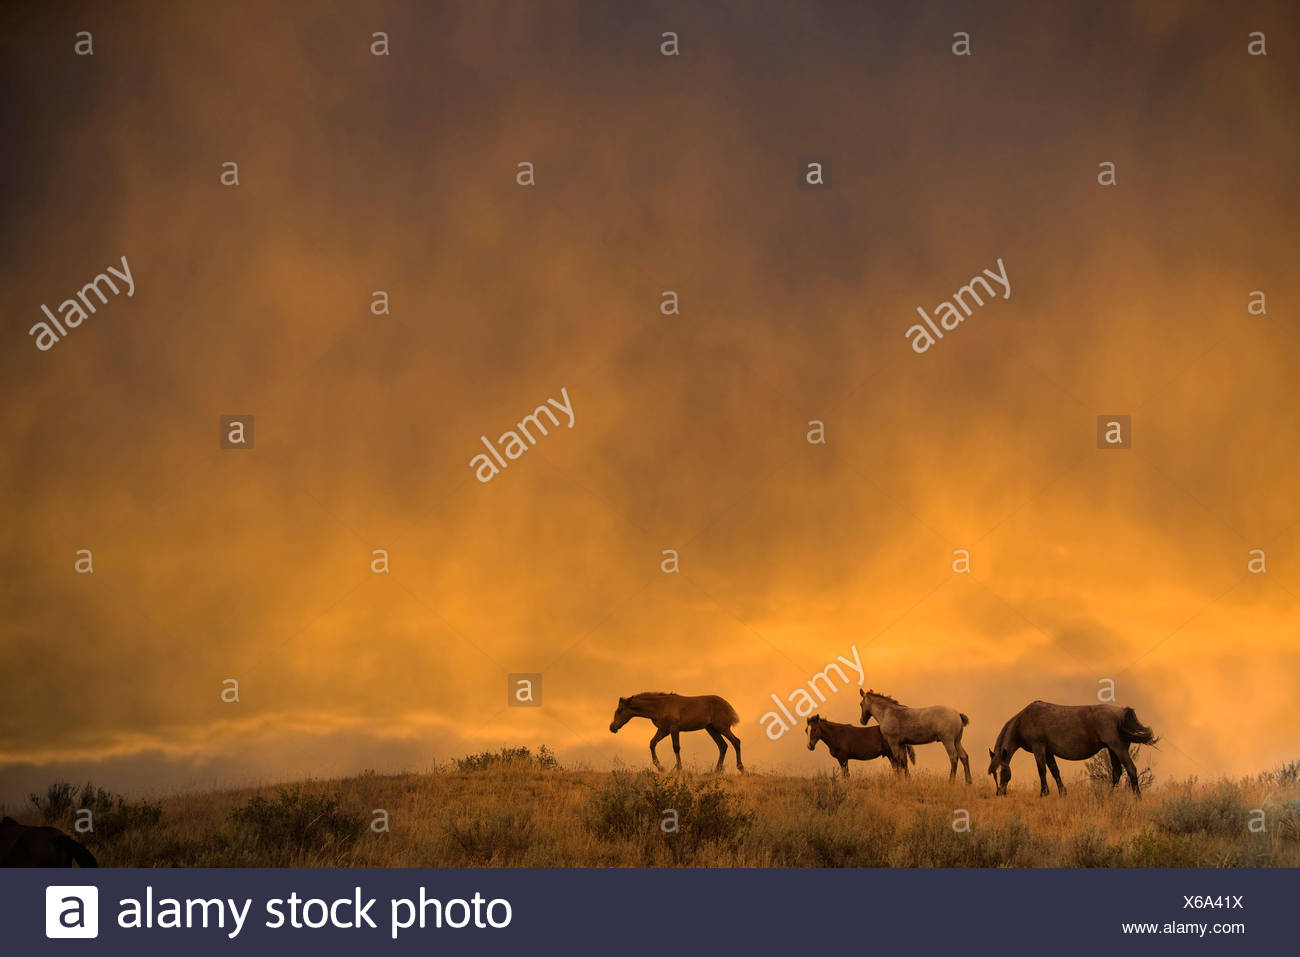 wild horse, Theodore, Roosevelt, National Park, North Dakota, USA, United States, America, horses, animal, sunset - Stock Image